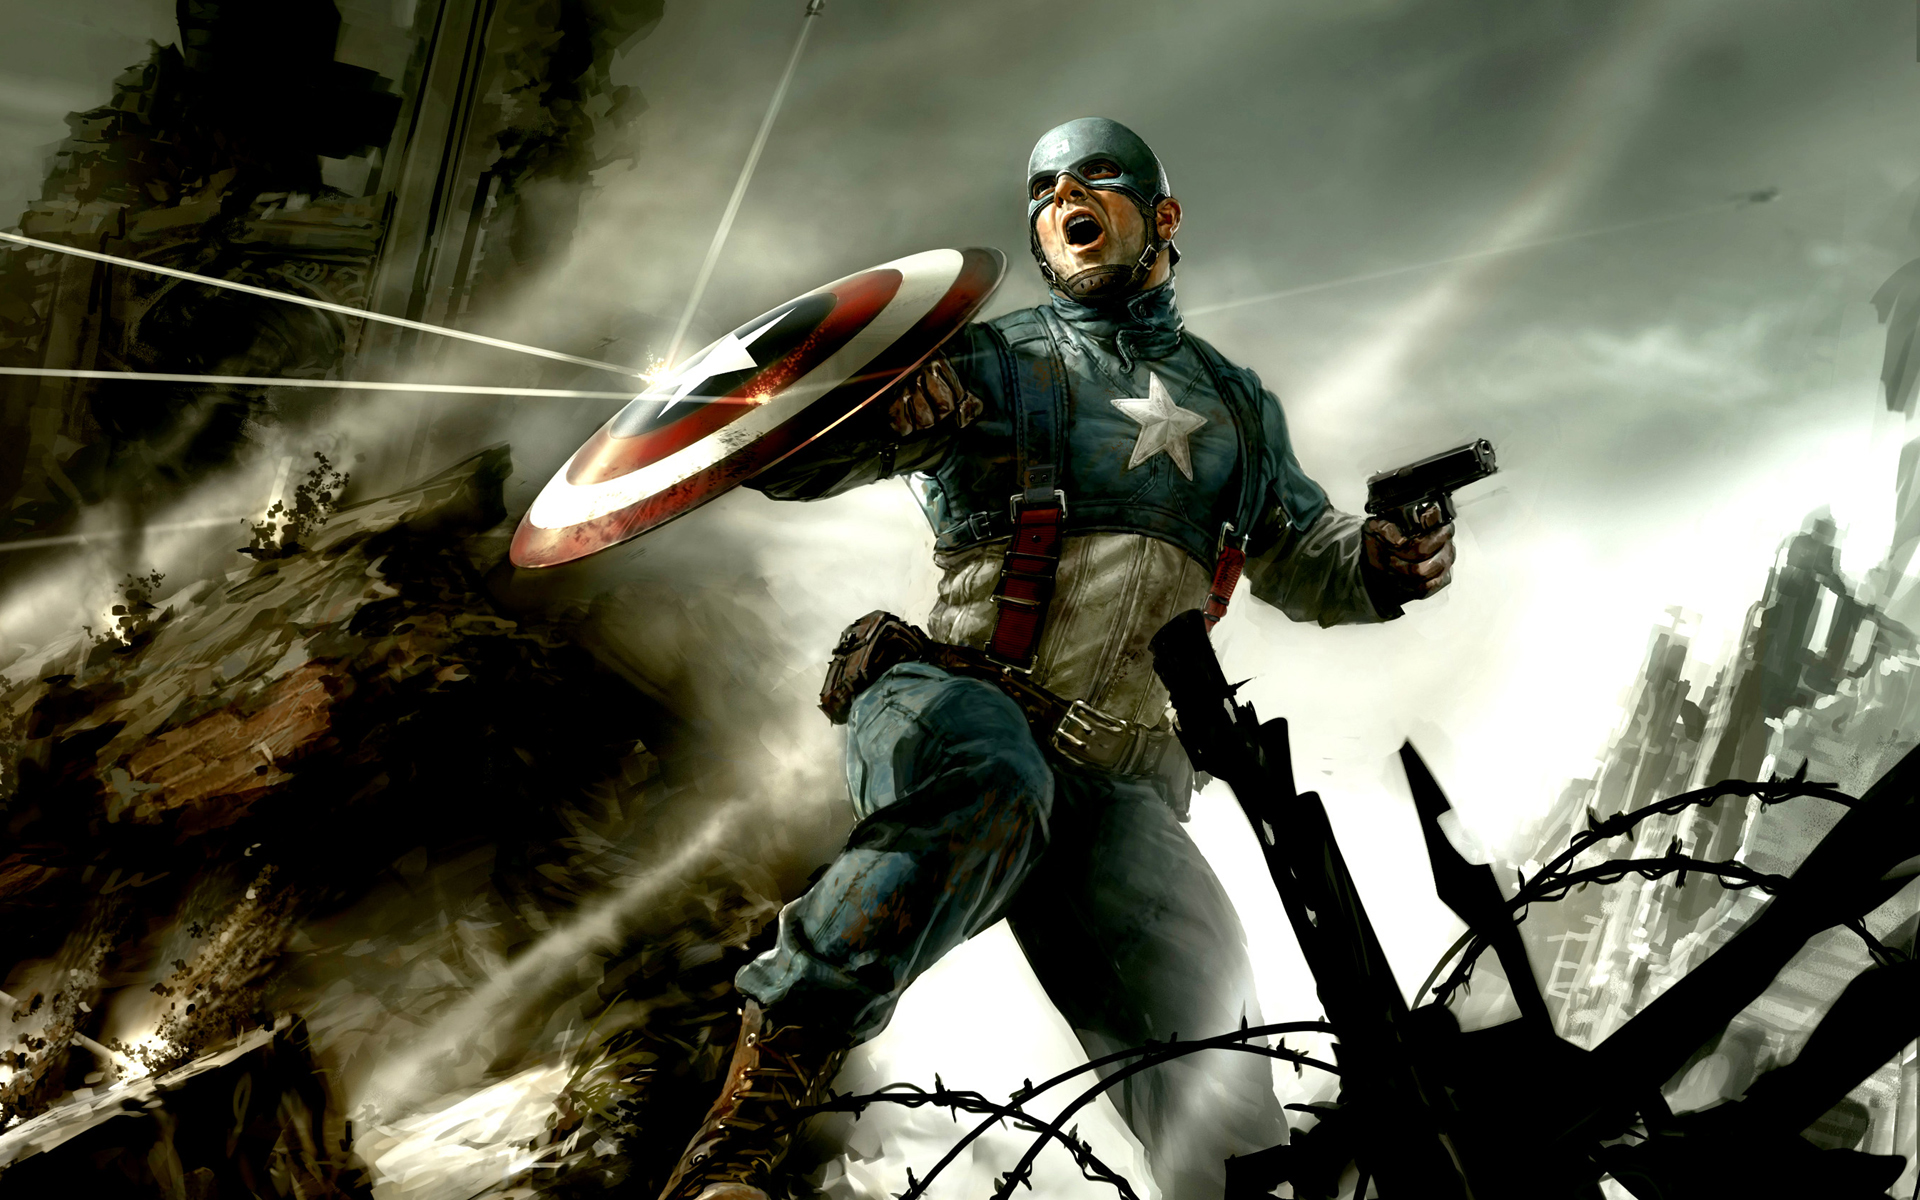 Captain America CG 1662.08 Kb